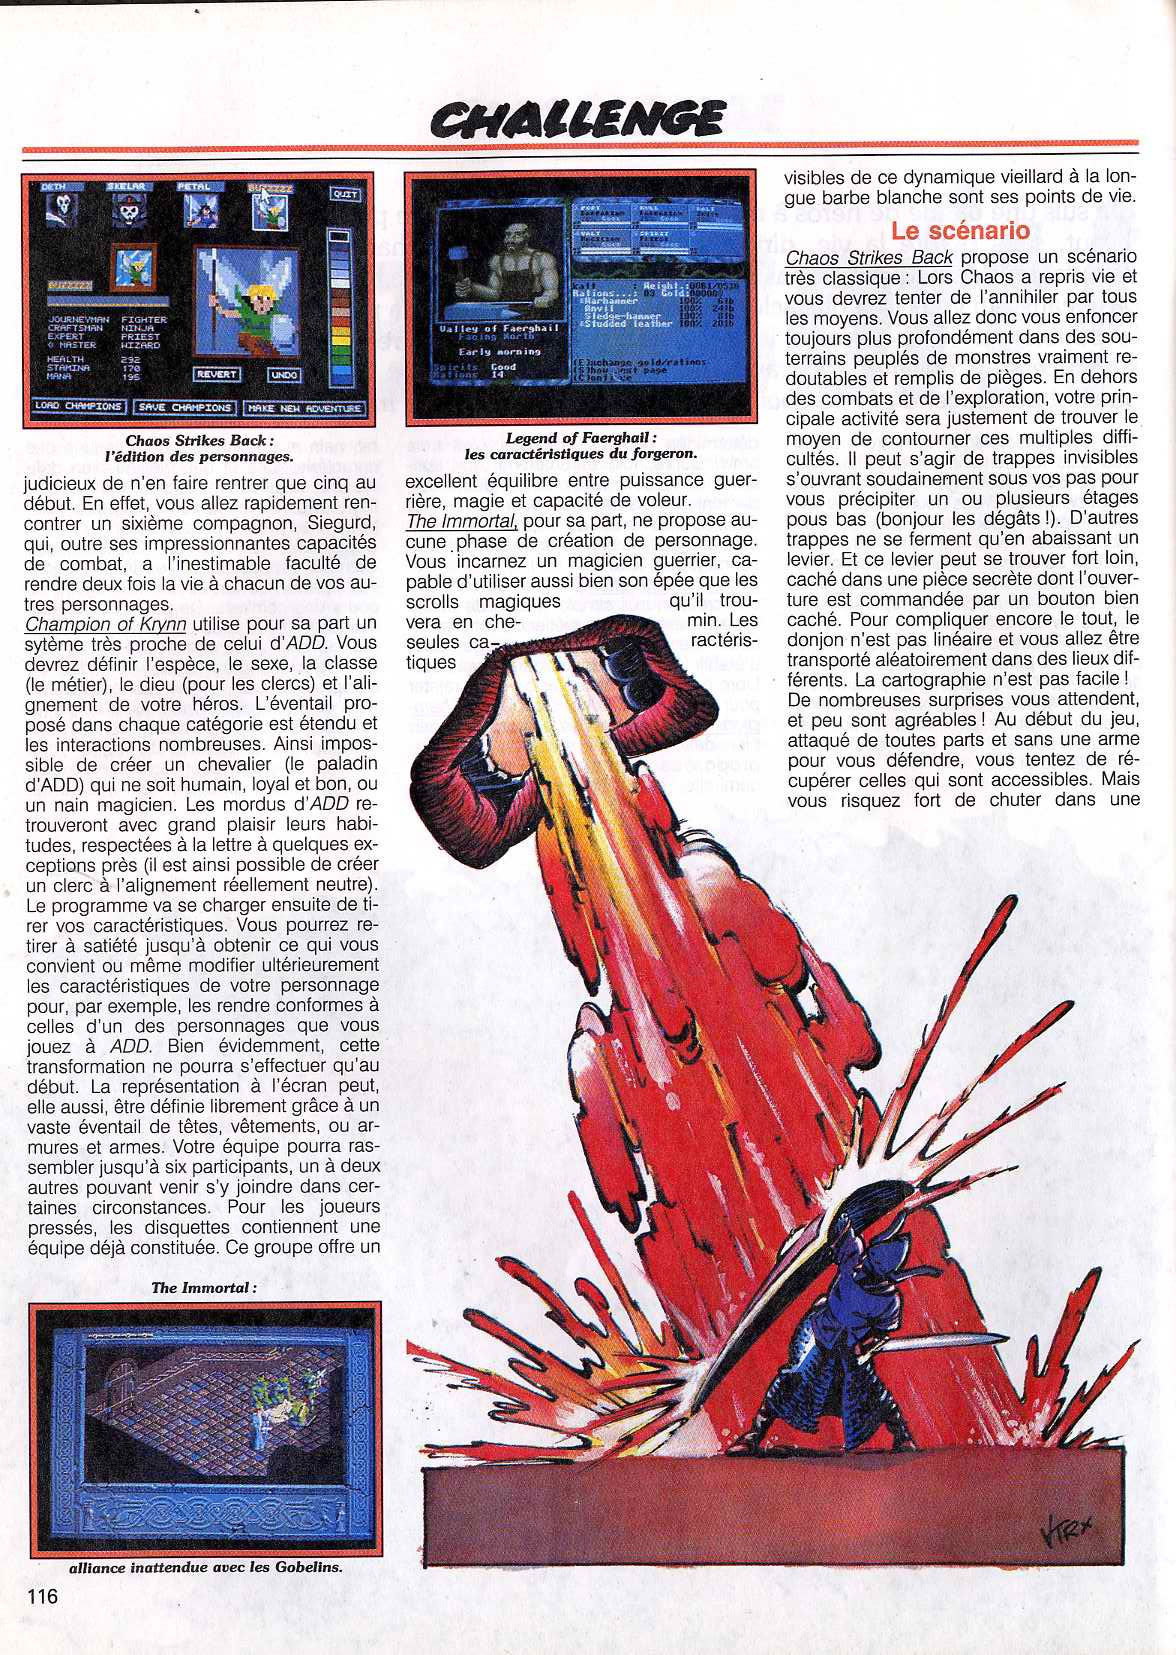 Chaos Strikes Back Article published in French magazine 'Tilt', Issue #83 November 1990, Page 116